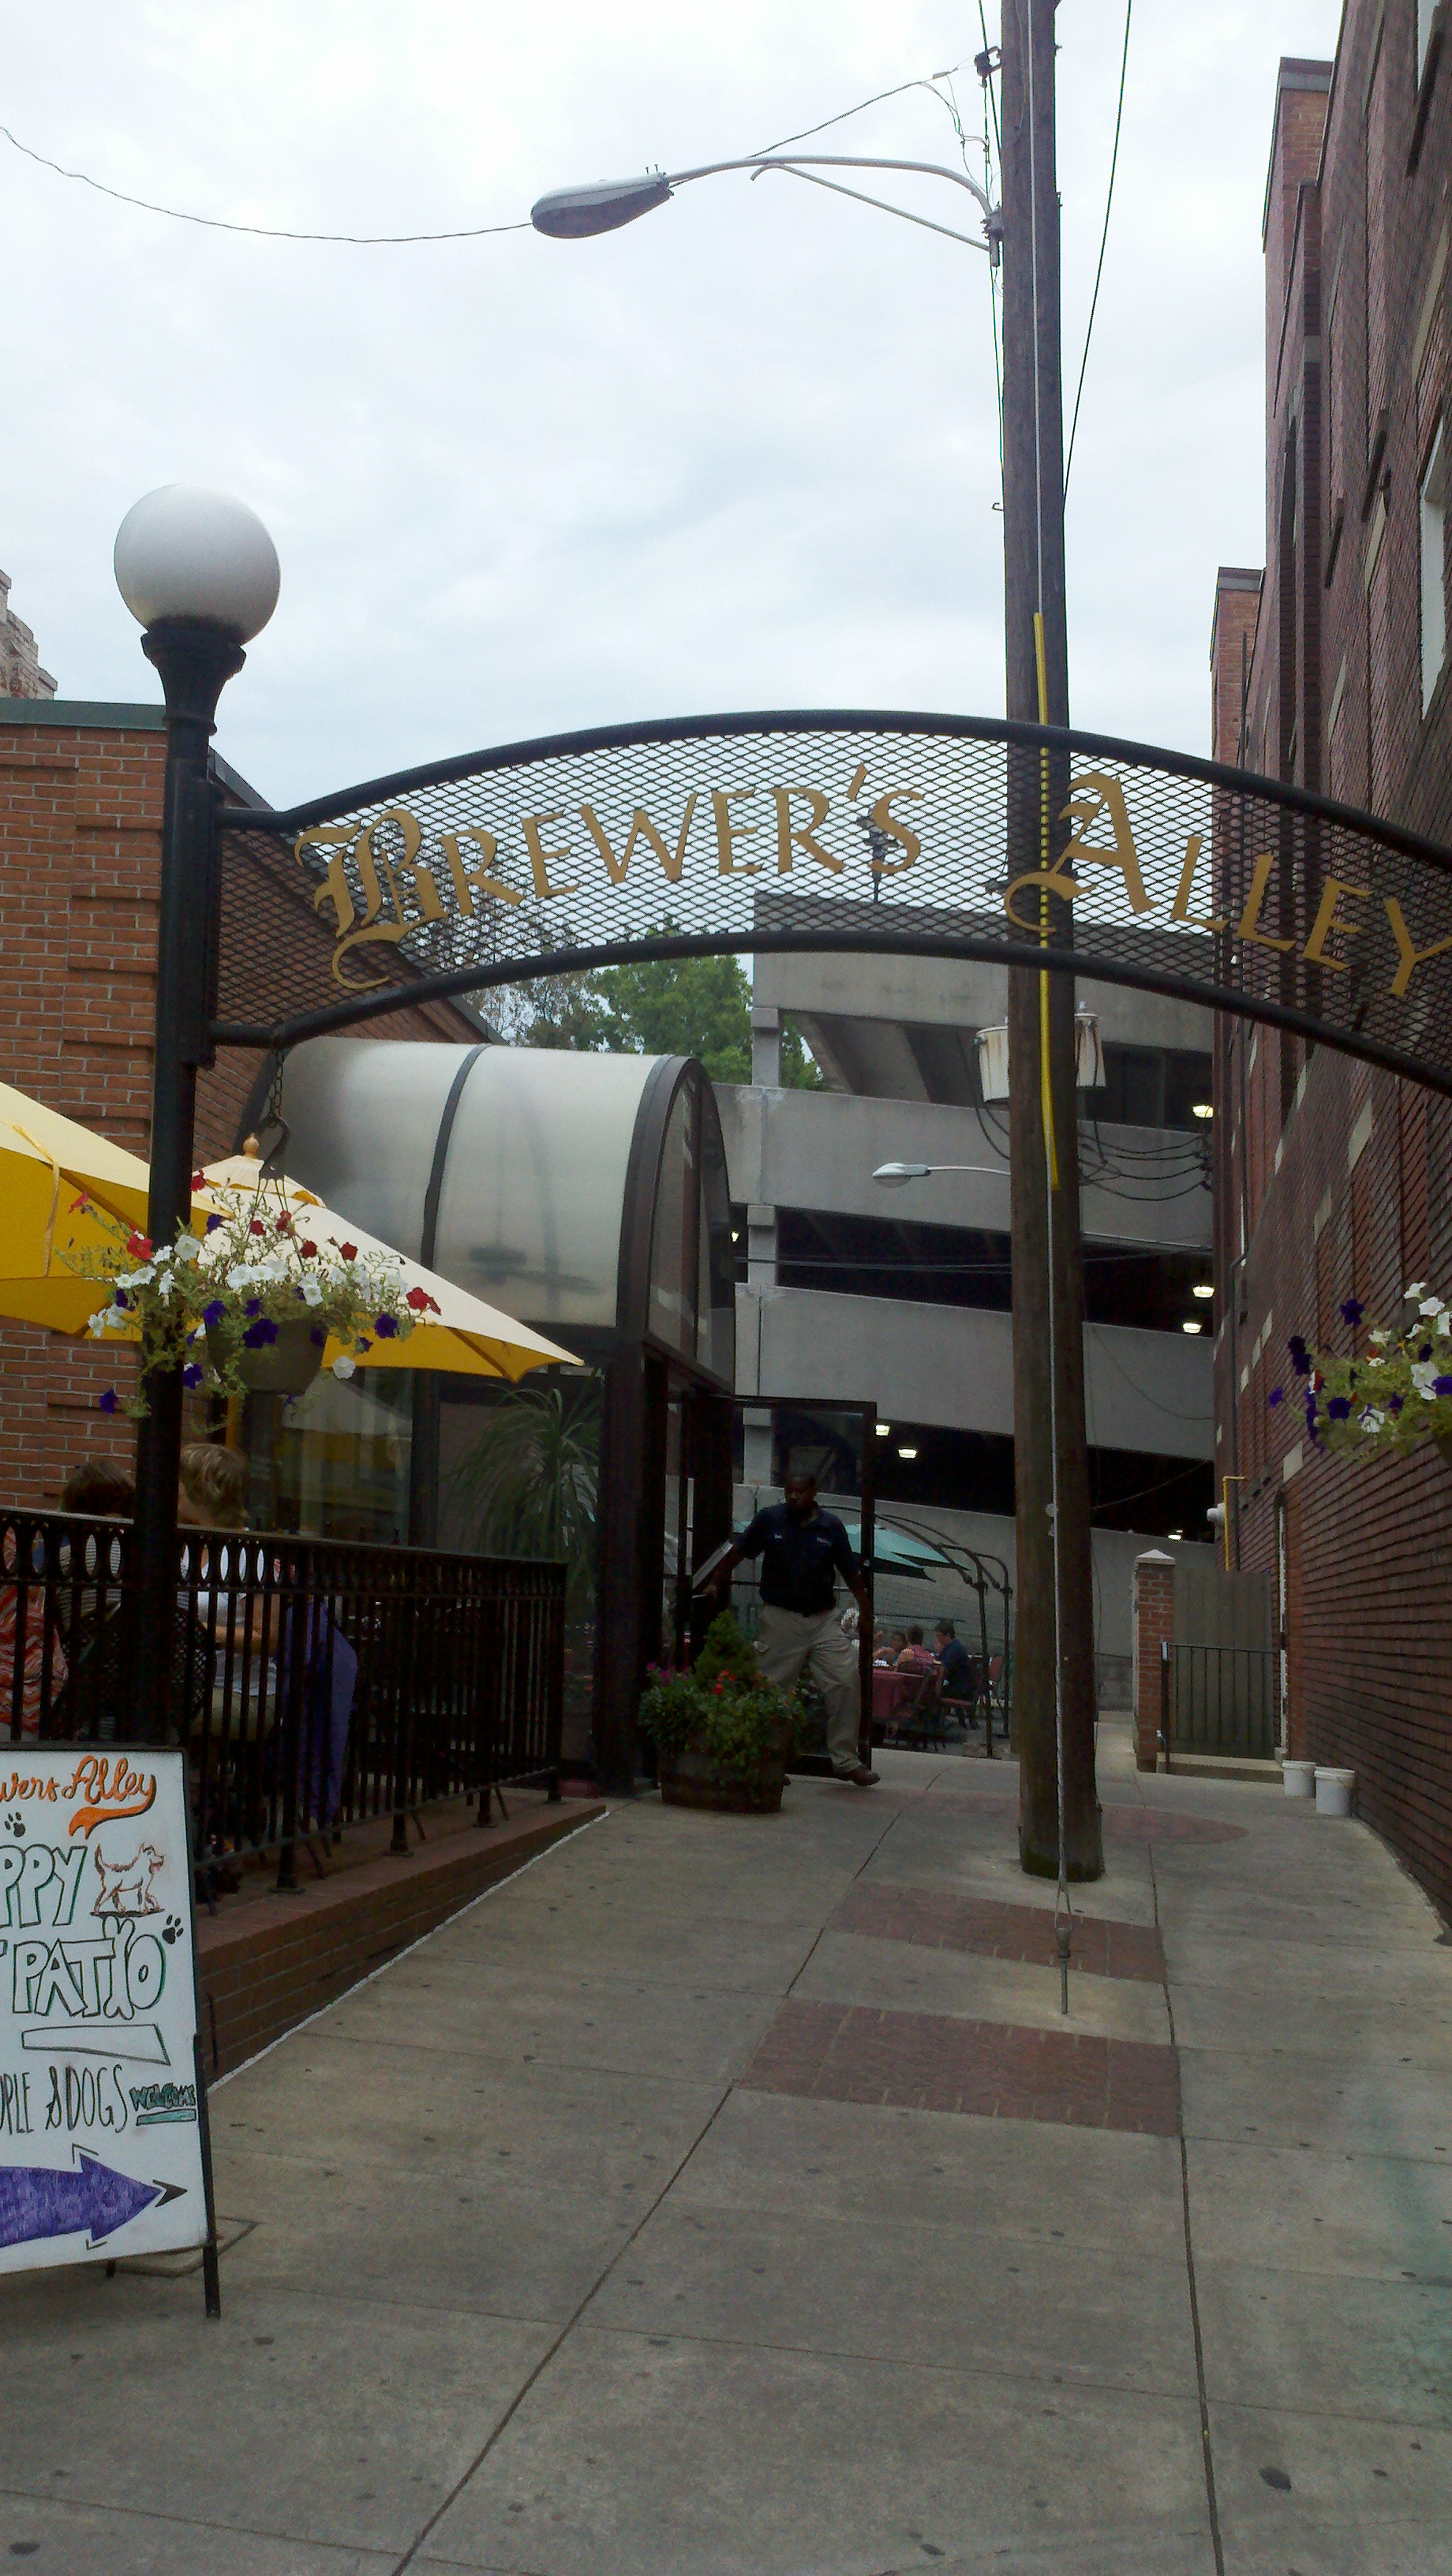 Brewer's Alley Restaurant & Brewery